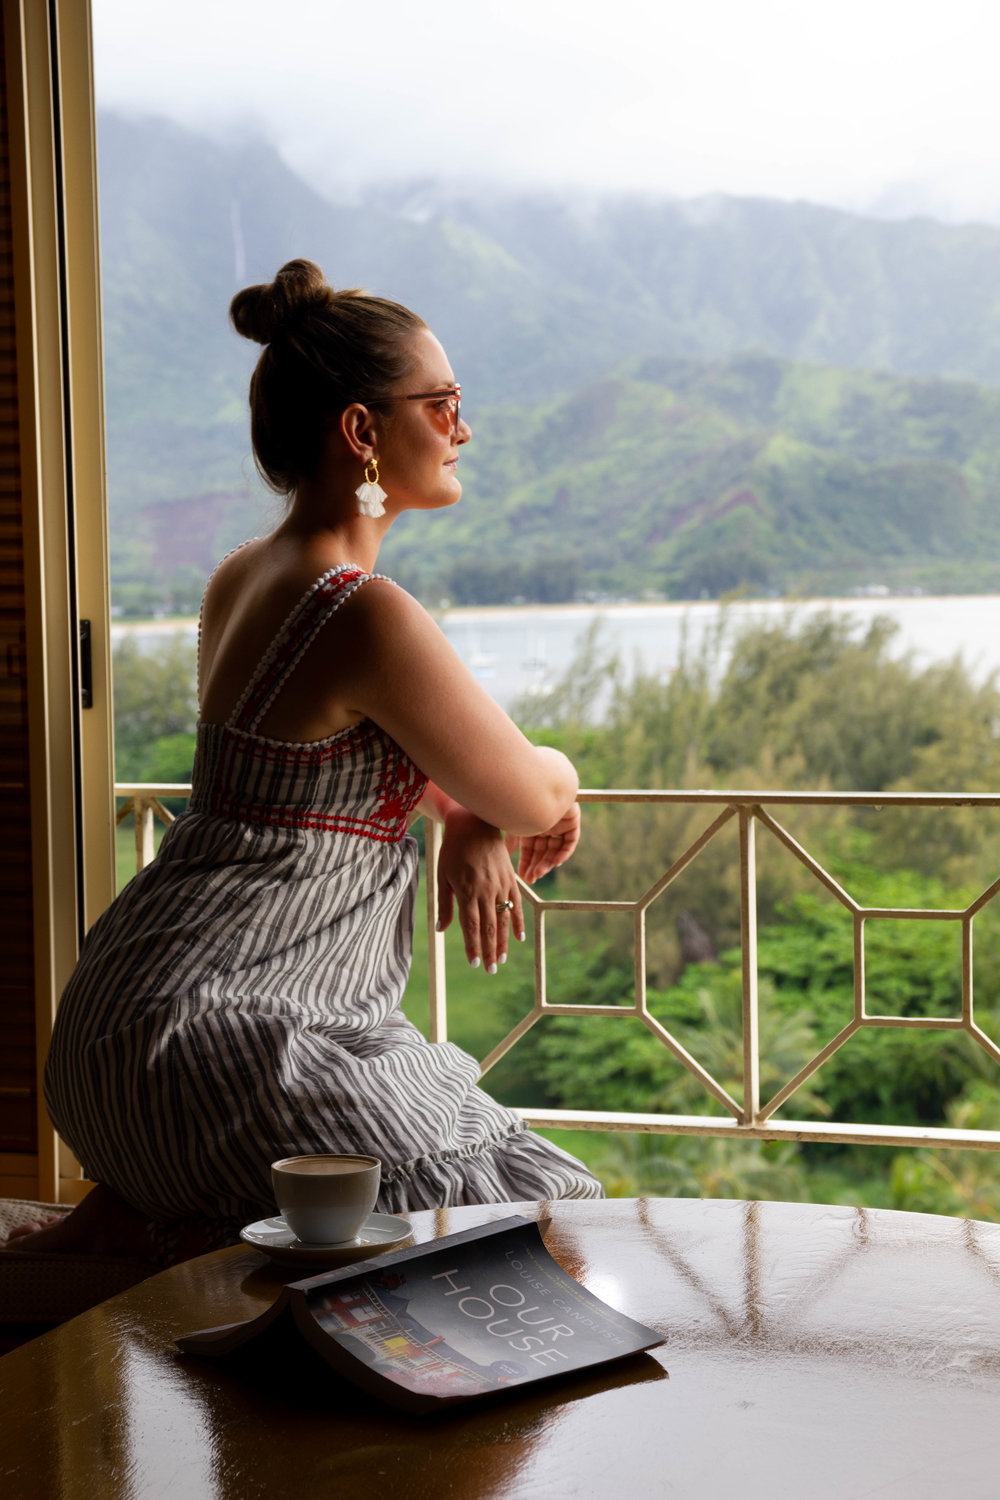 Reading Our House by Louise Candlish at the St. Regis Princeville in Kauai, Hawaii